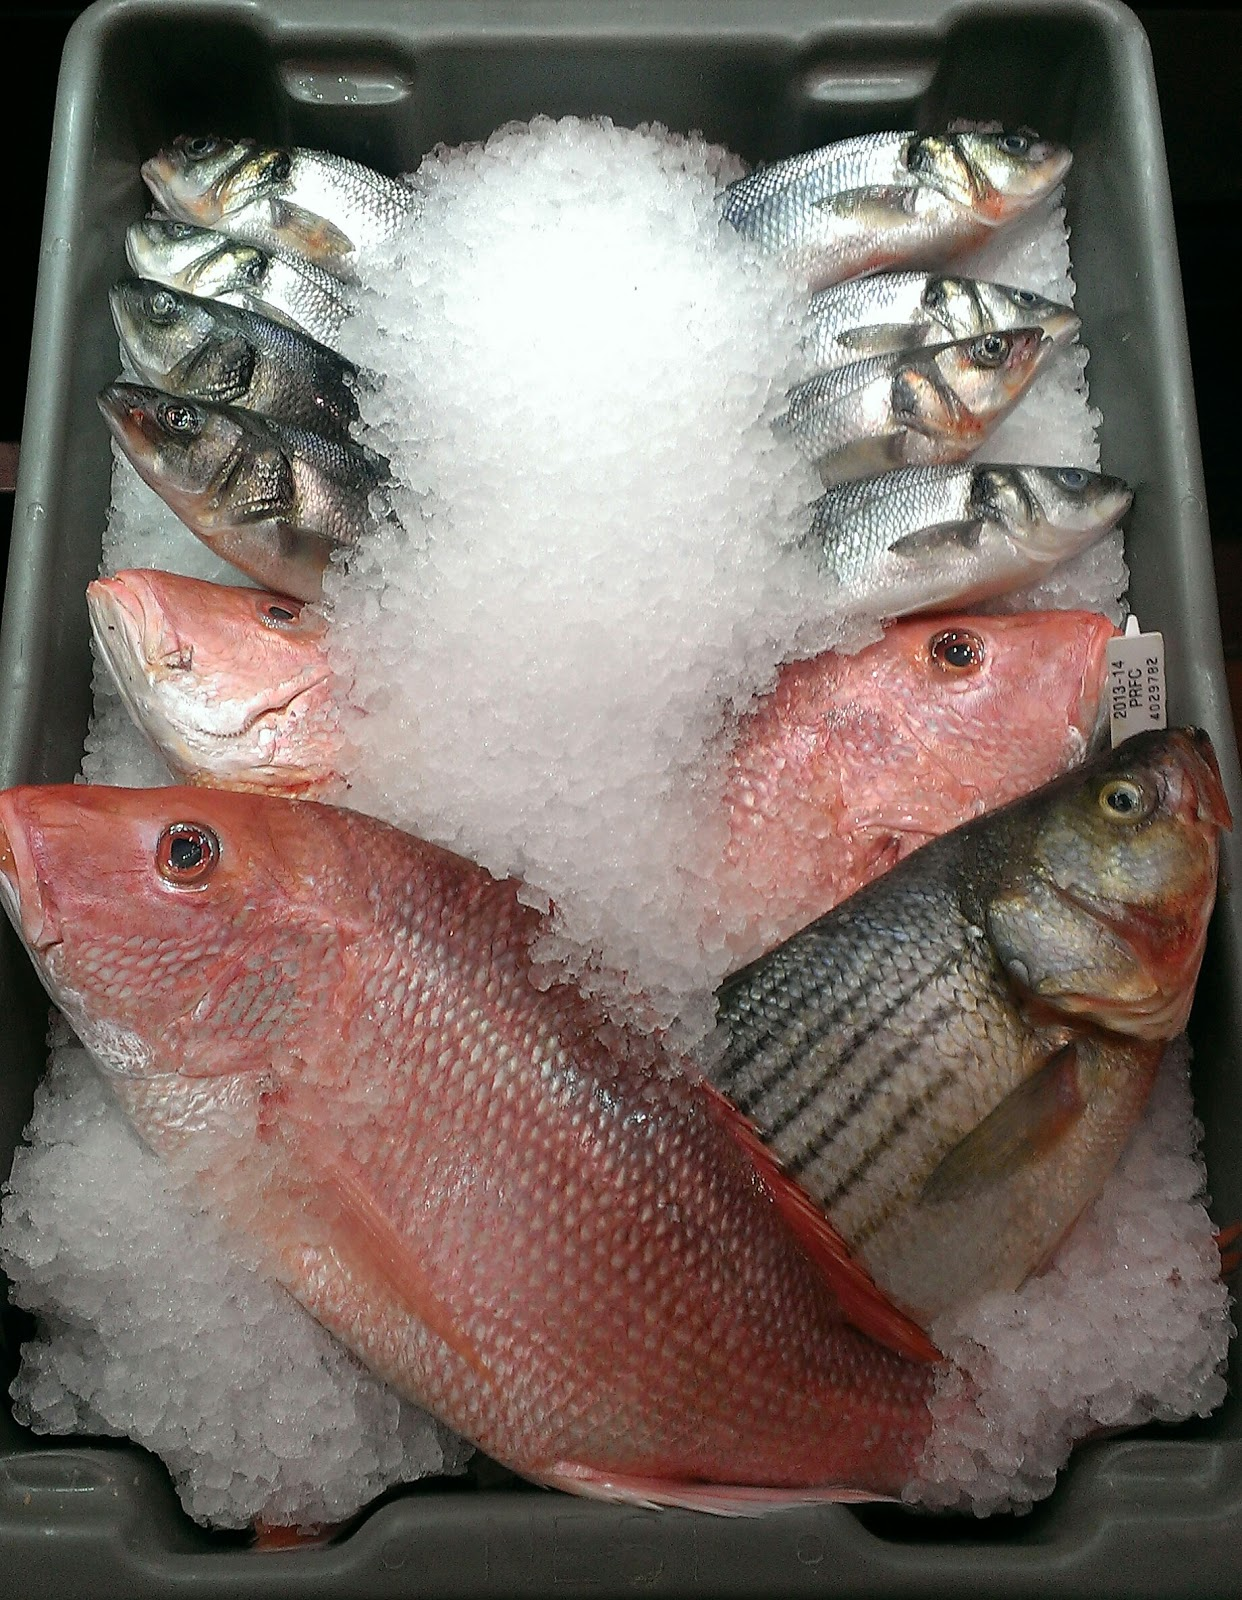 a dozen red and white fish in a tray of ice